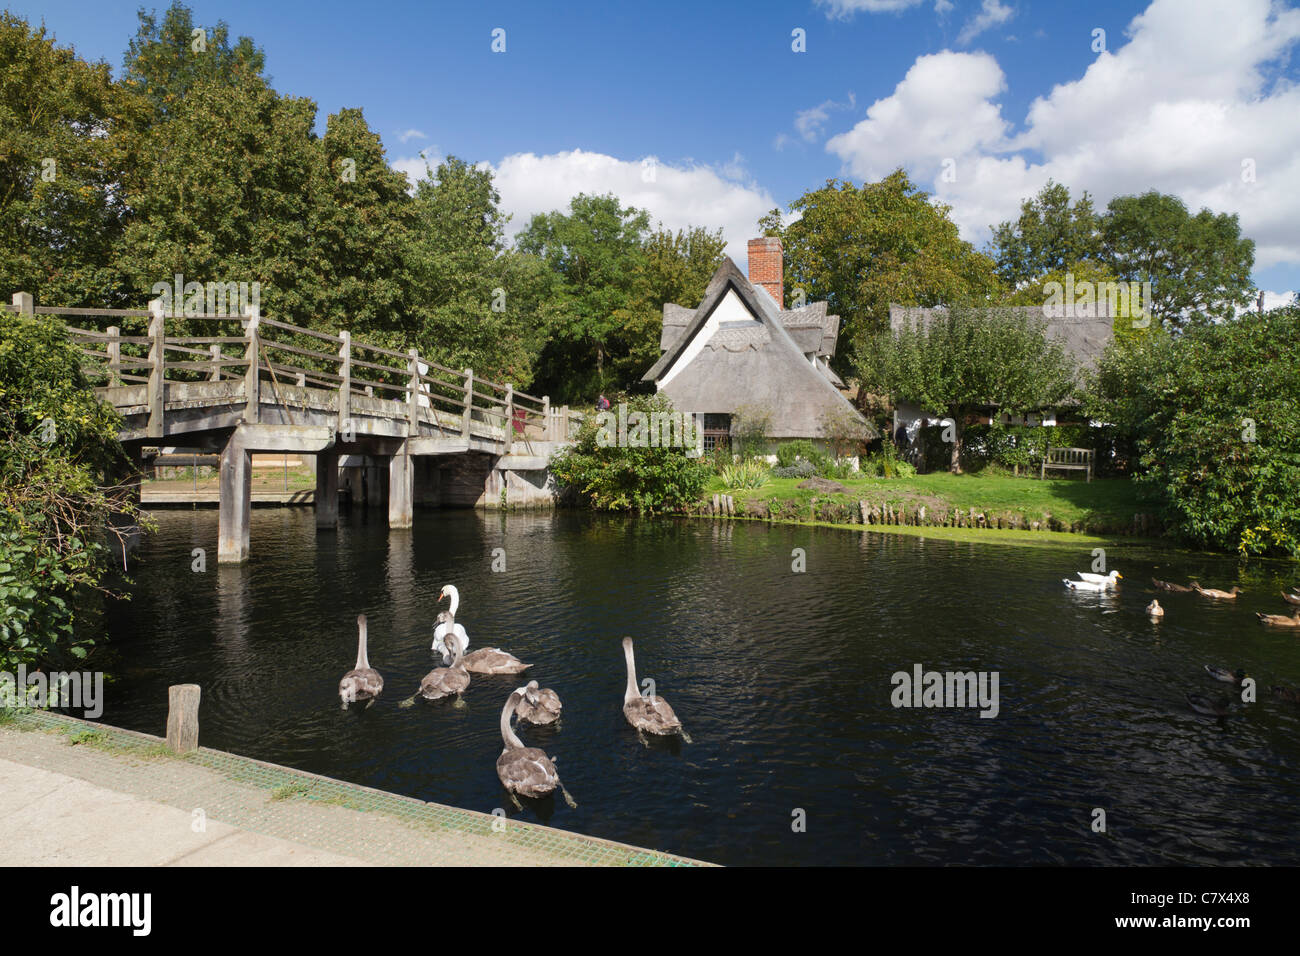 Swans and cygnets on River Stour by bridge in Flatford, Essex, UK Stock Photo